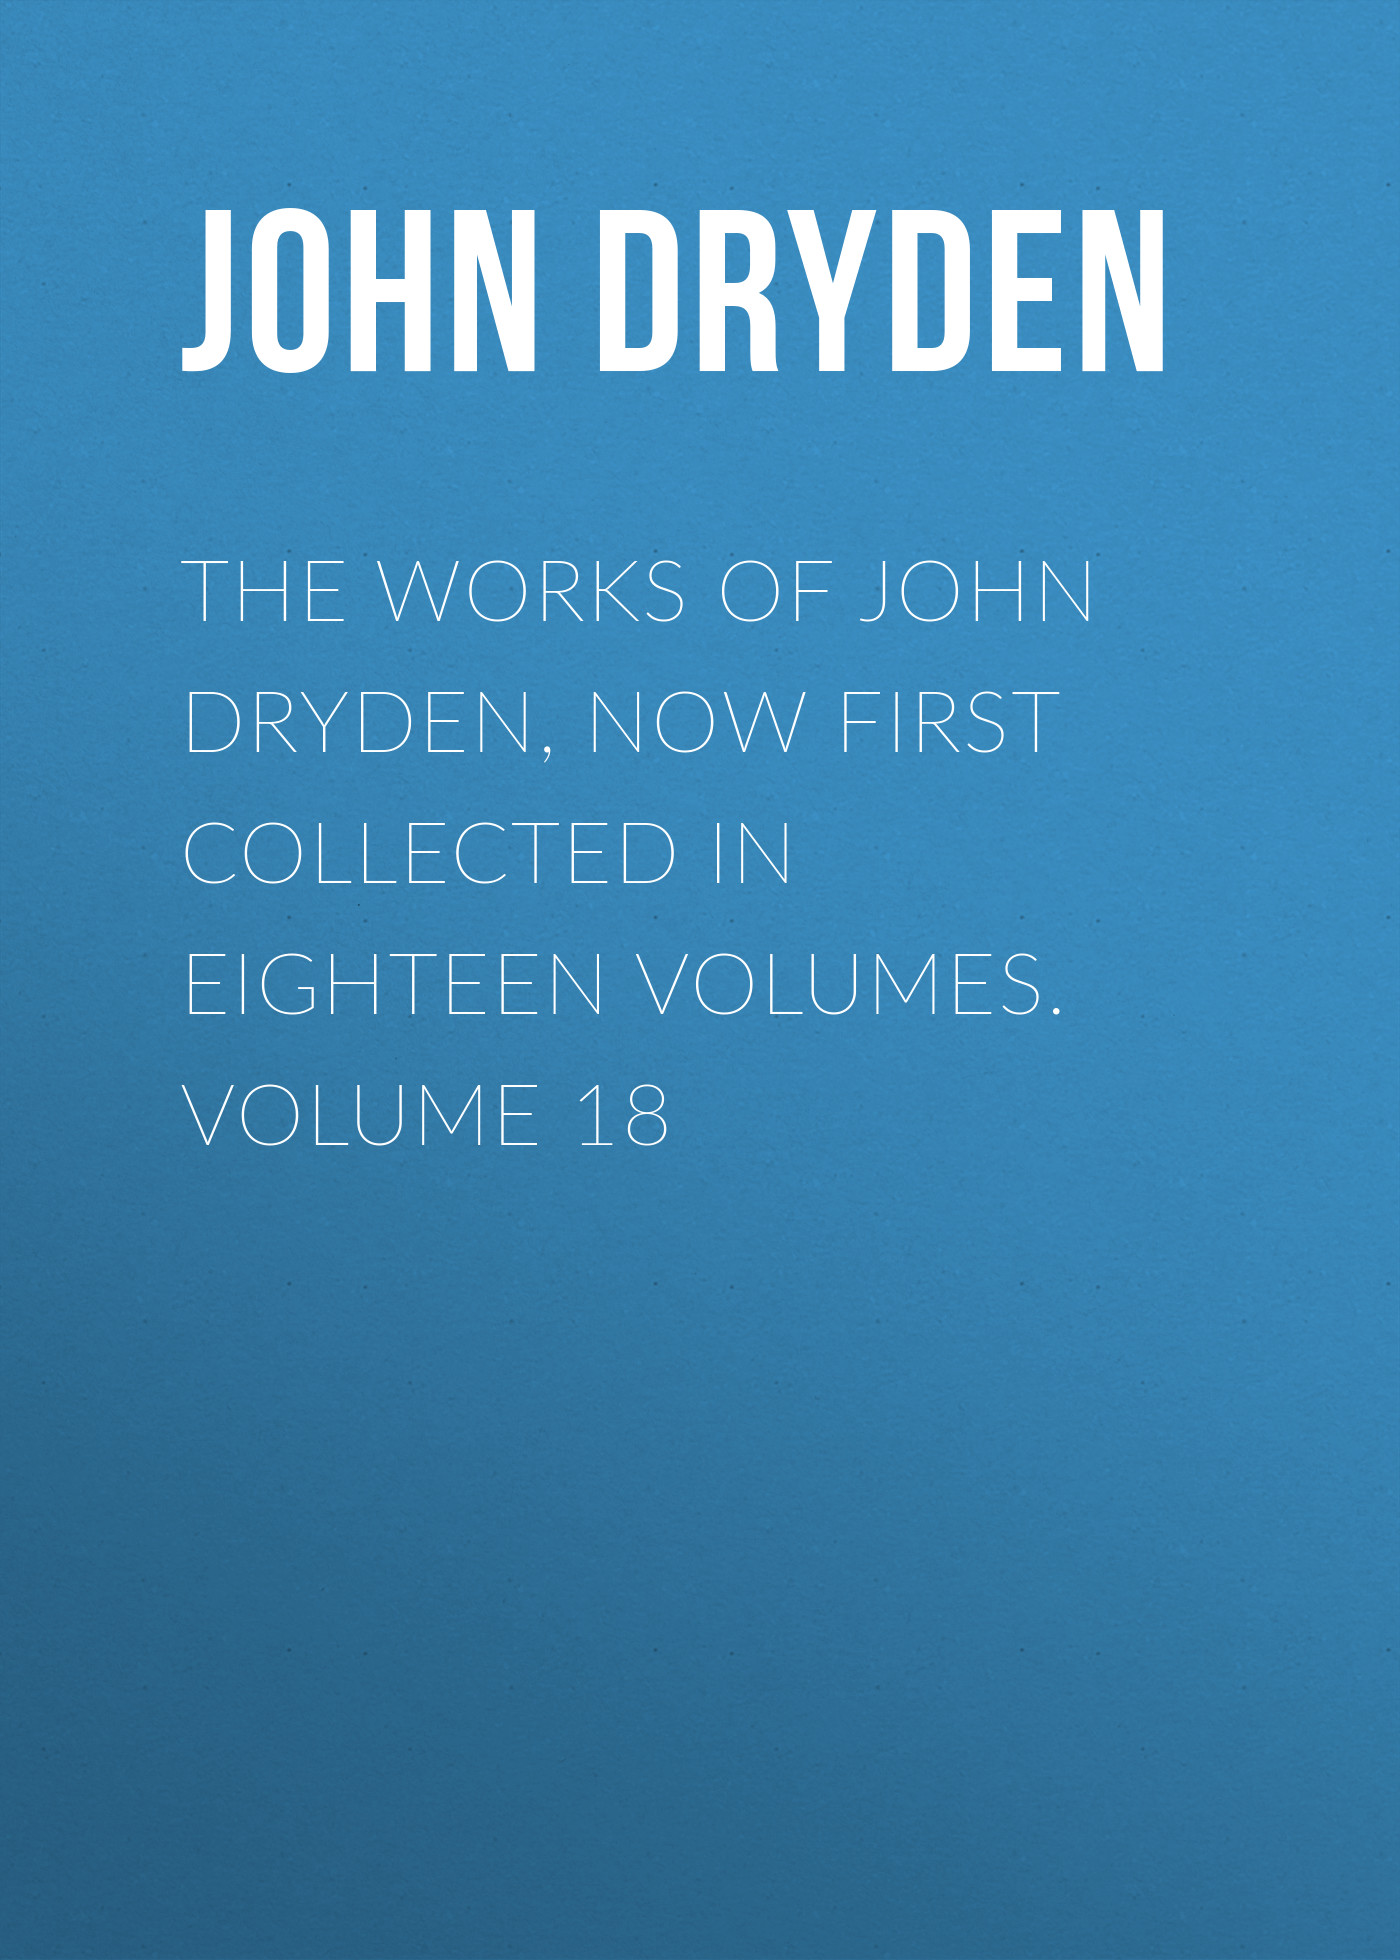 John Dryden The Works of John Dryden, now first collected in eighteen volumes. Volume 18 ruskin john 1819 1900 the poems of john ruskin now first collected from original manuscript and printed sources volume 2